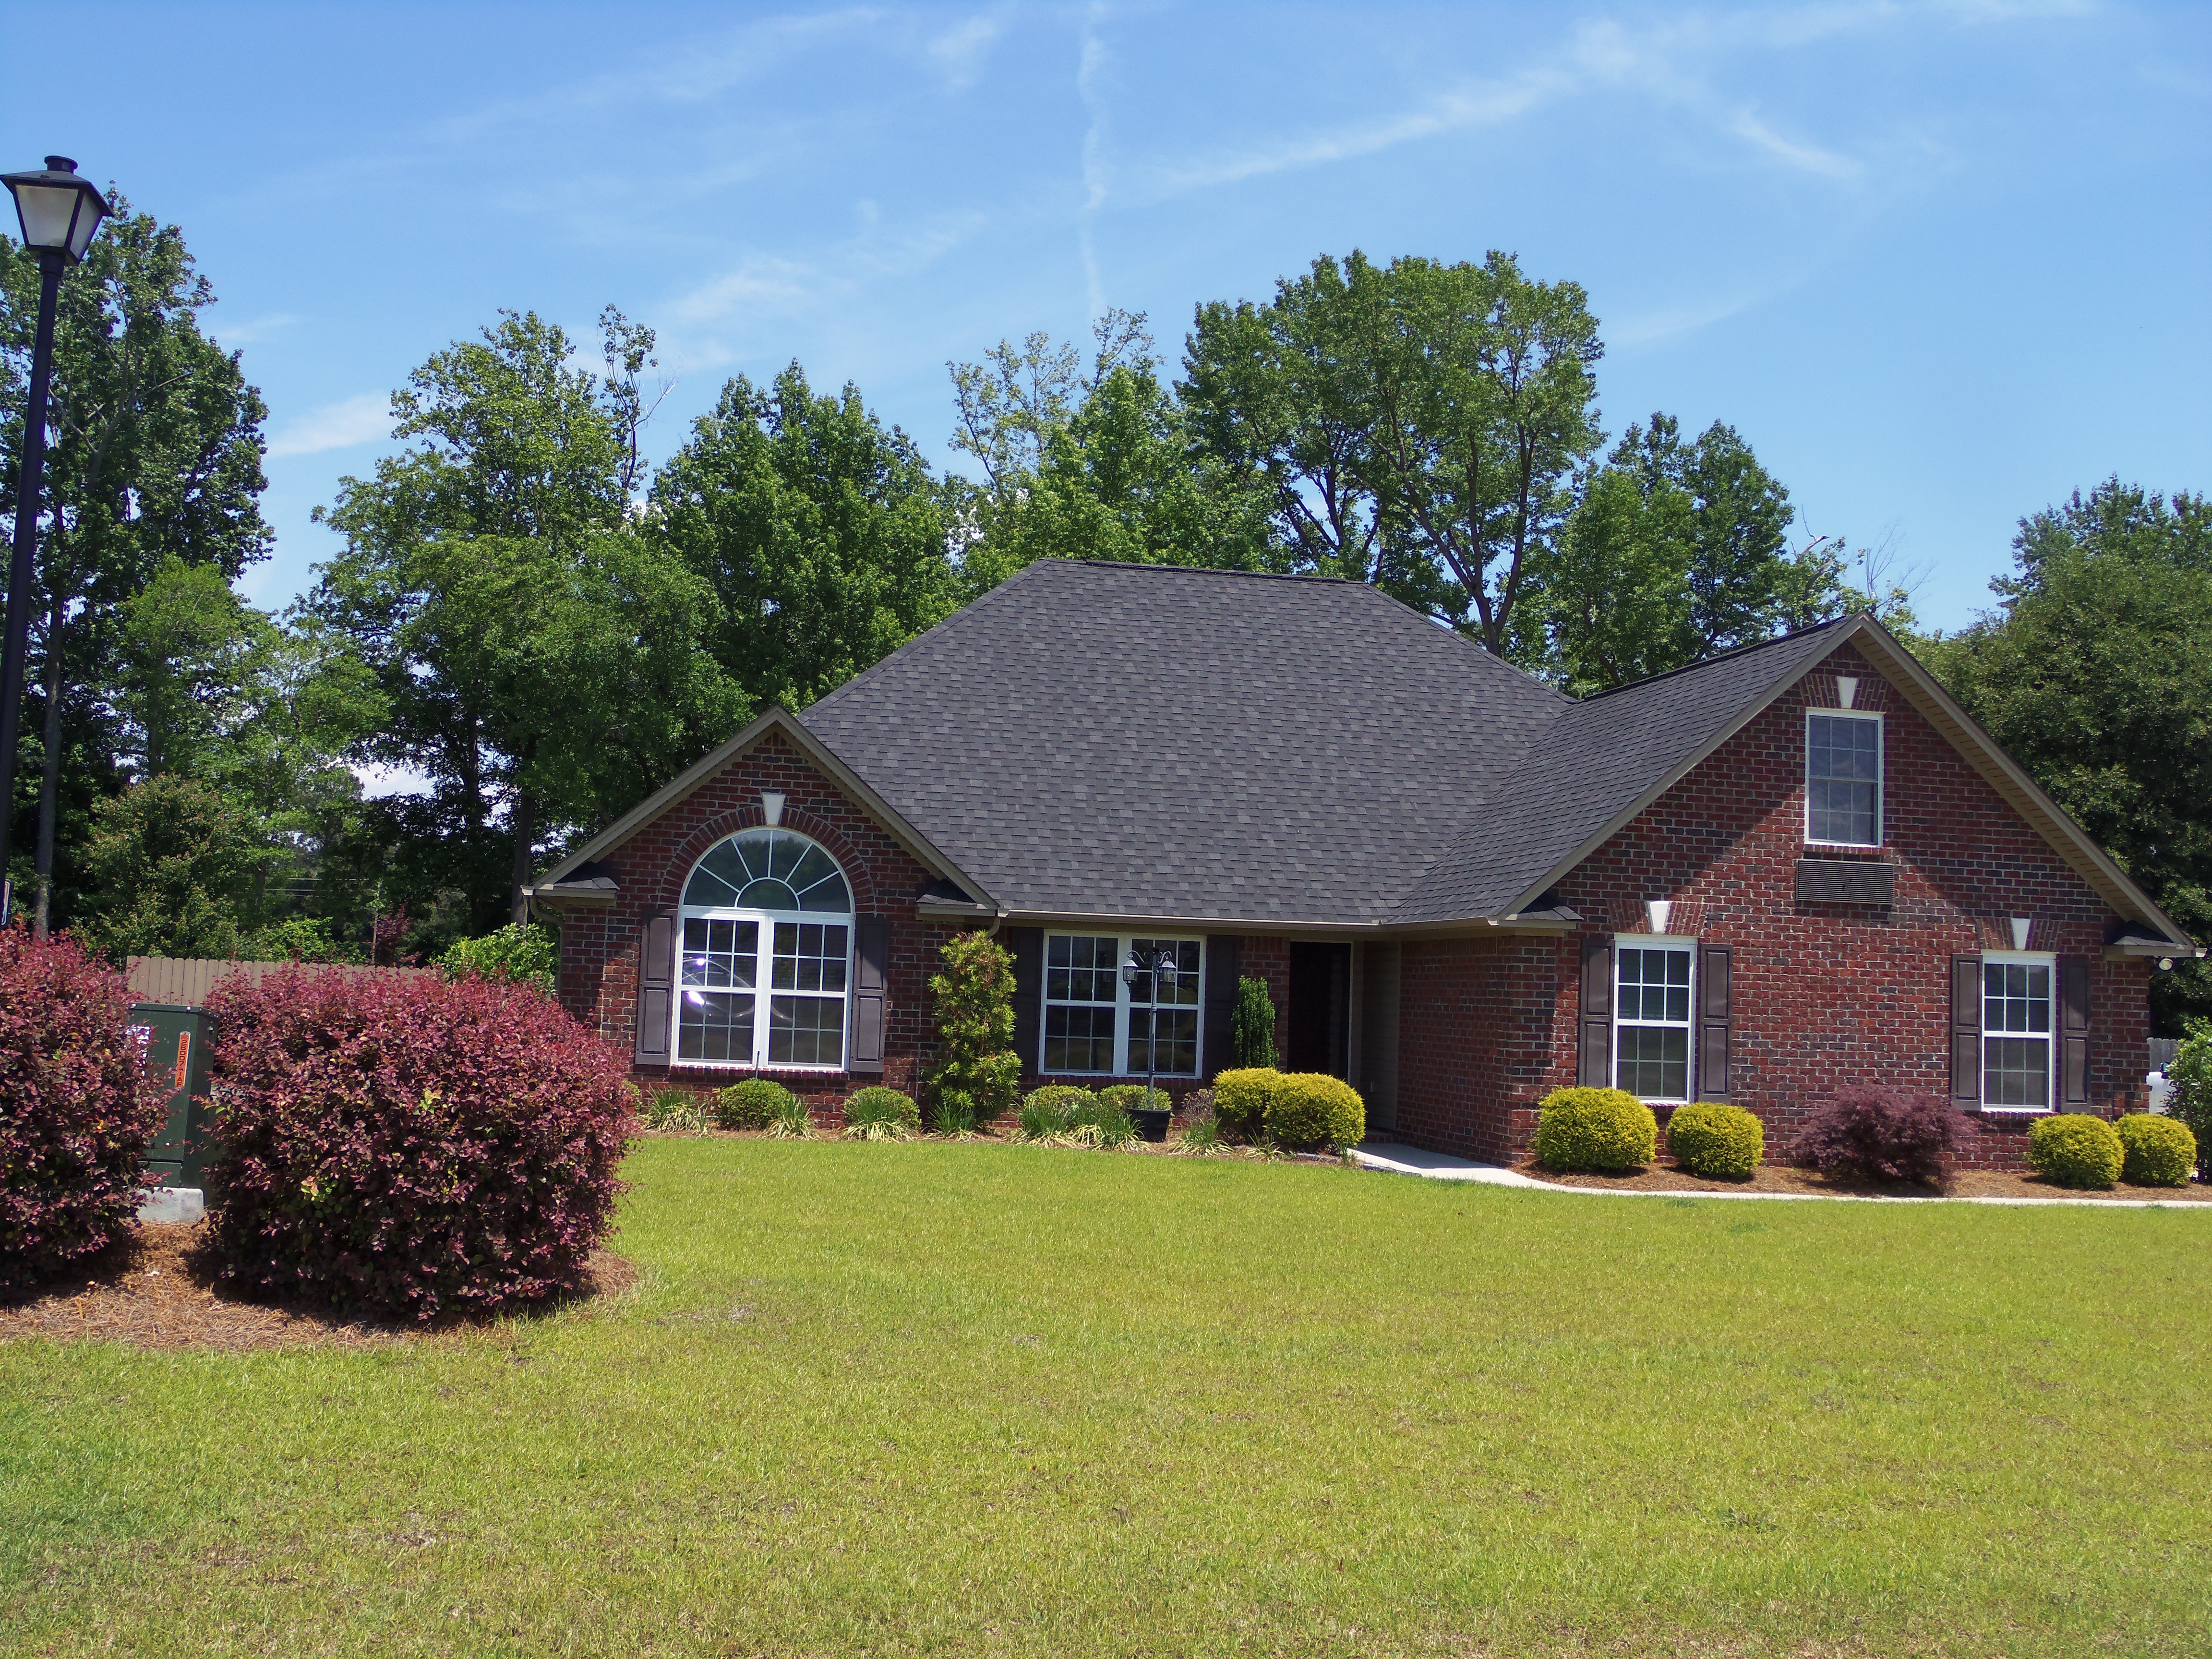 Homes For Sale In Stonecroft In Sumter Sc